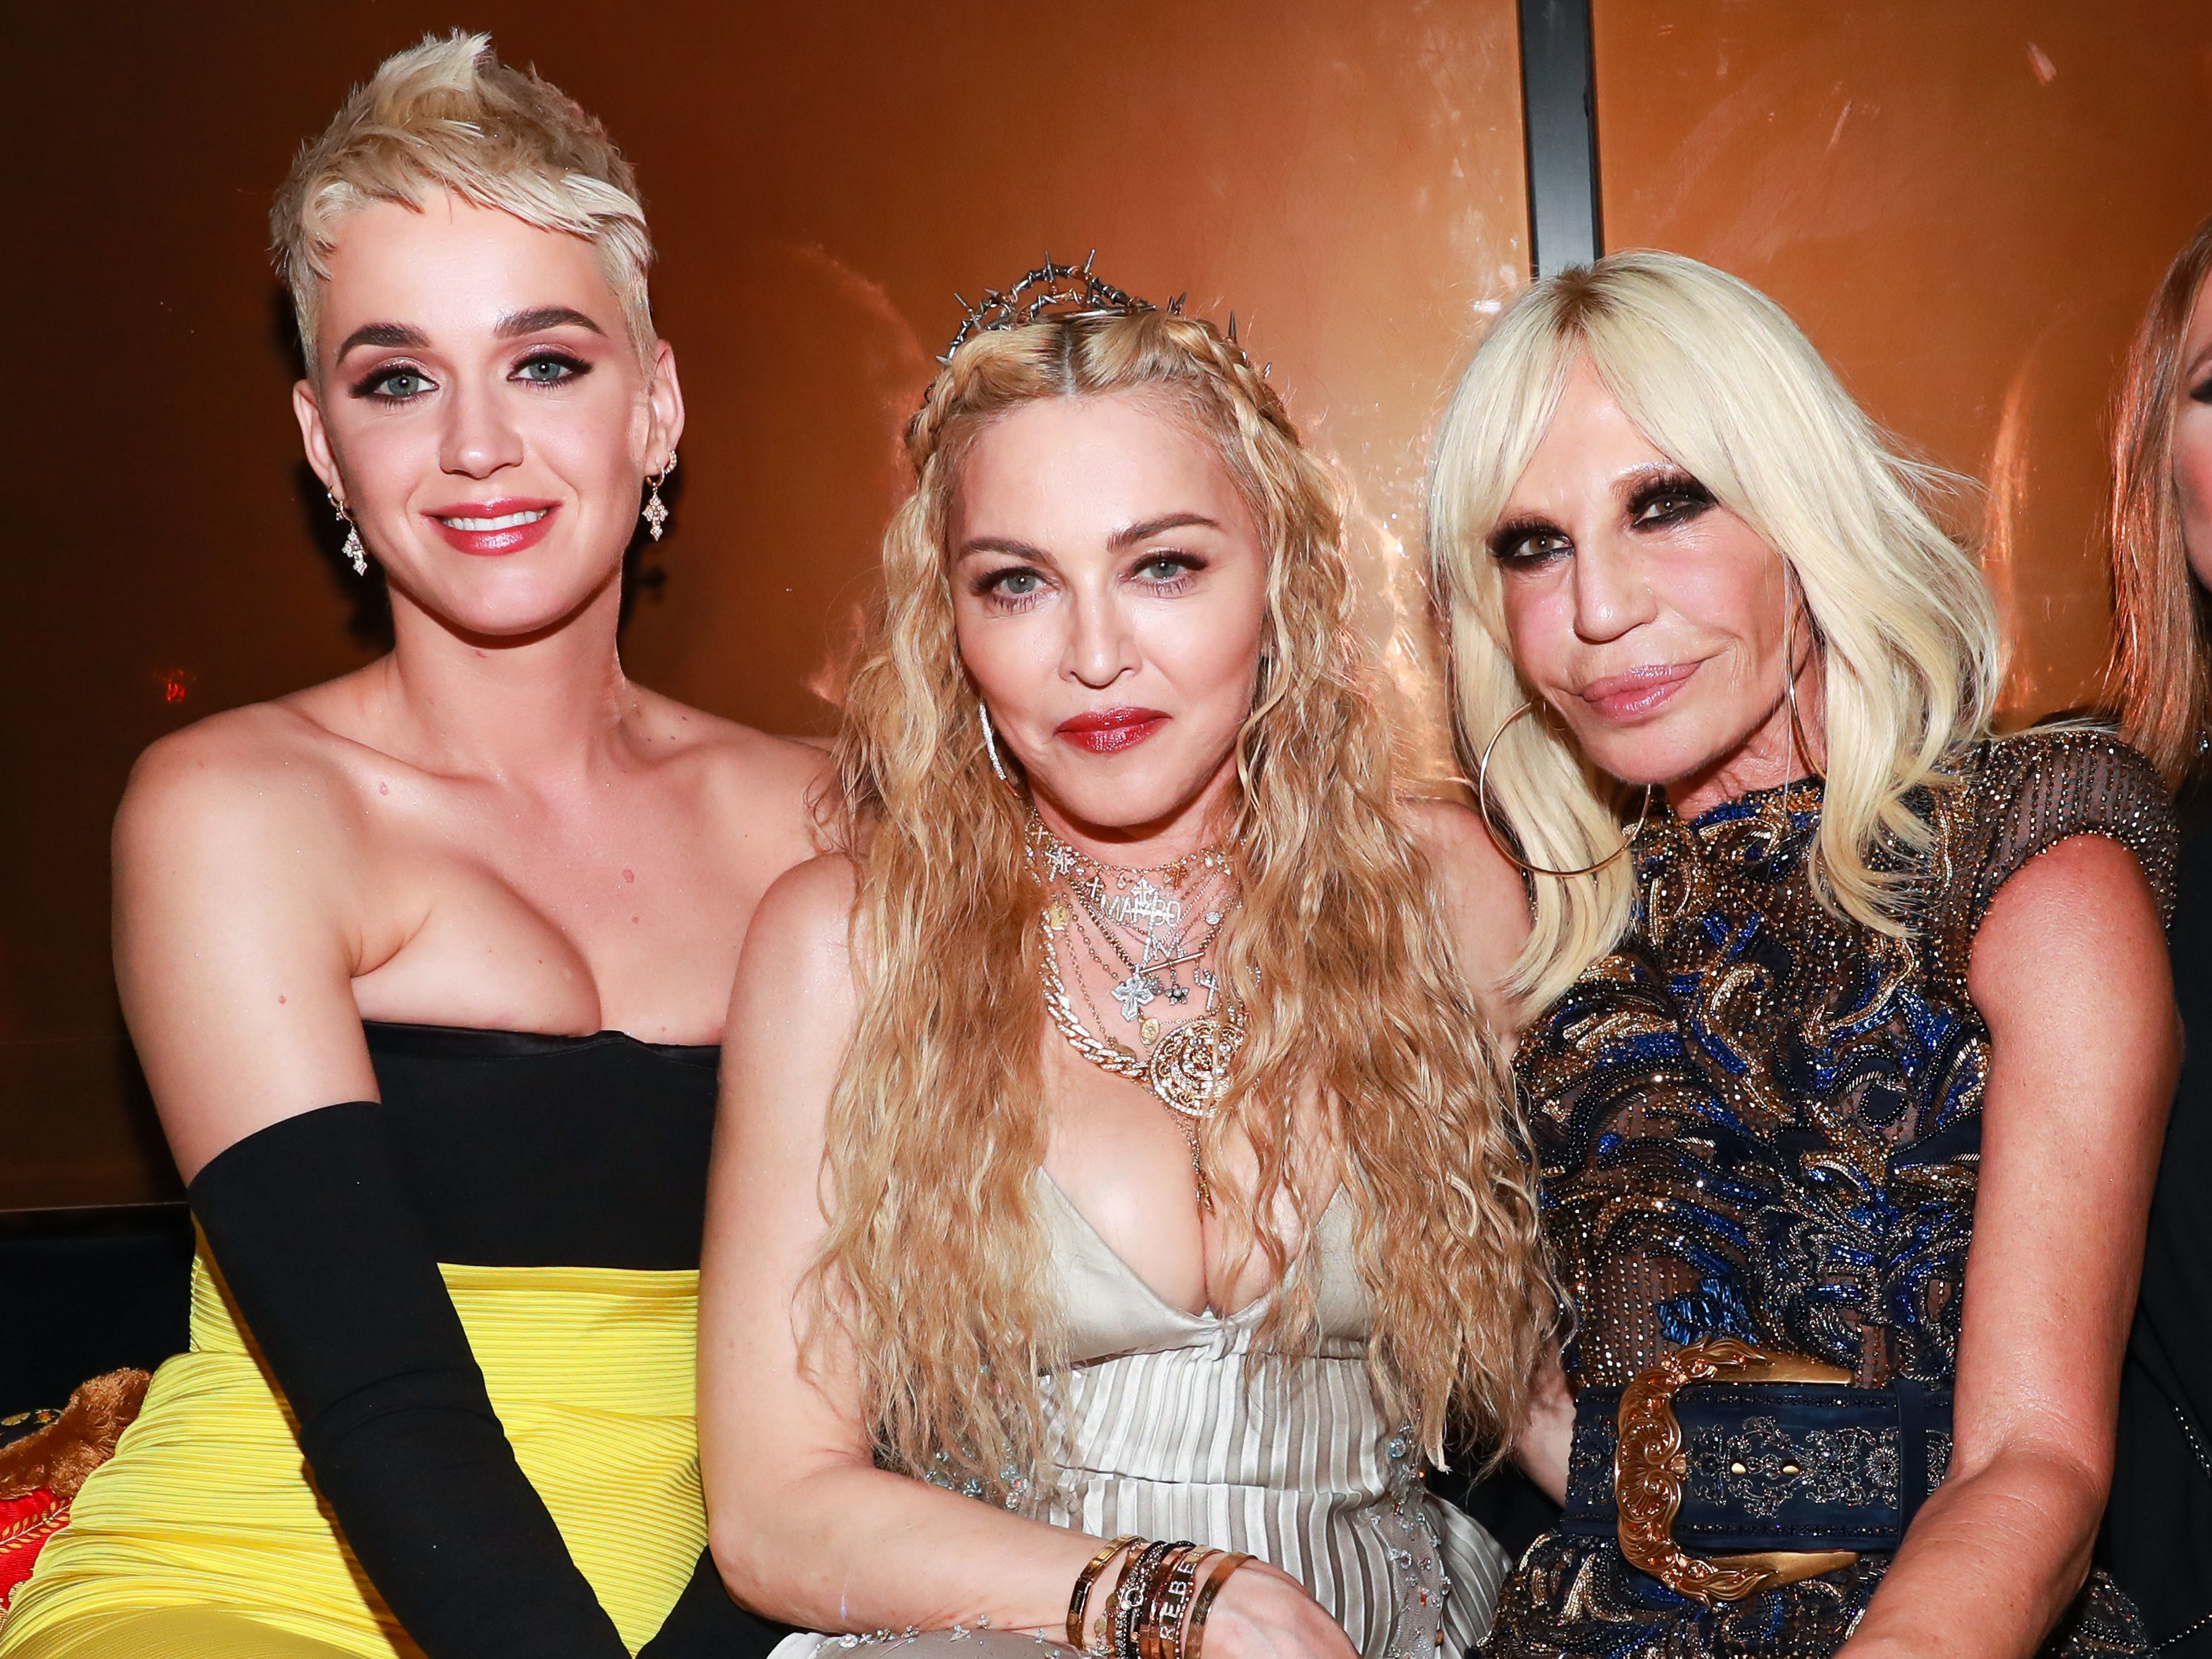 Katy Perry, Madonna, and Donatella Versace attend the Versace Afterparty in New York City on May 7, 2018.